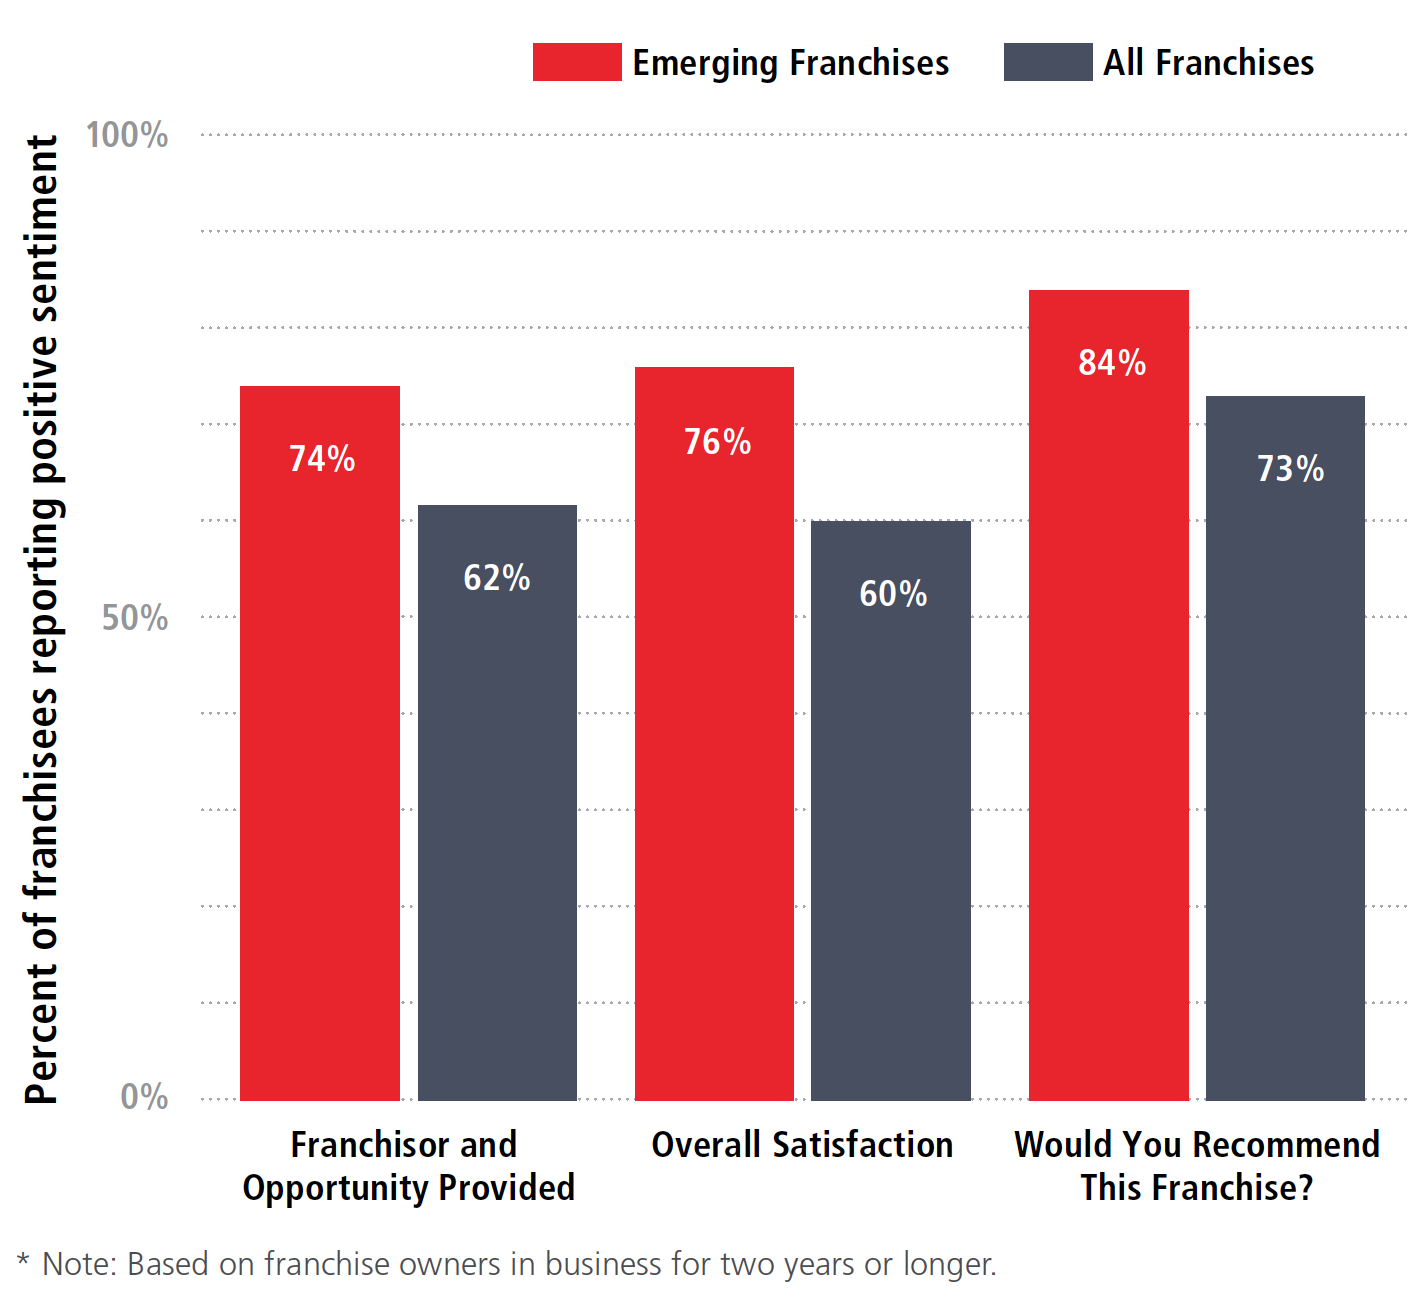 Franchisee Satisfaction Data Among Emerging Brands